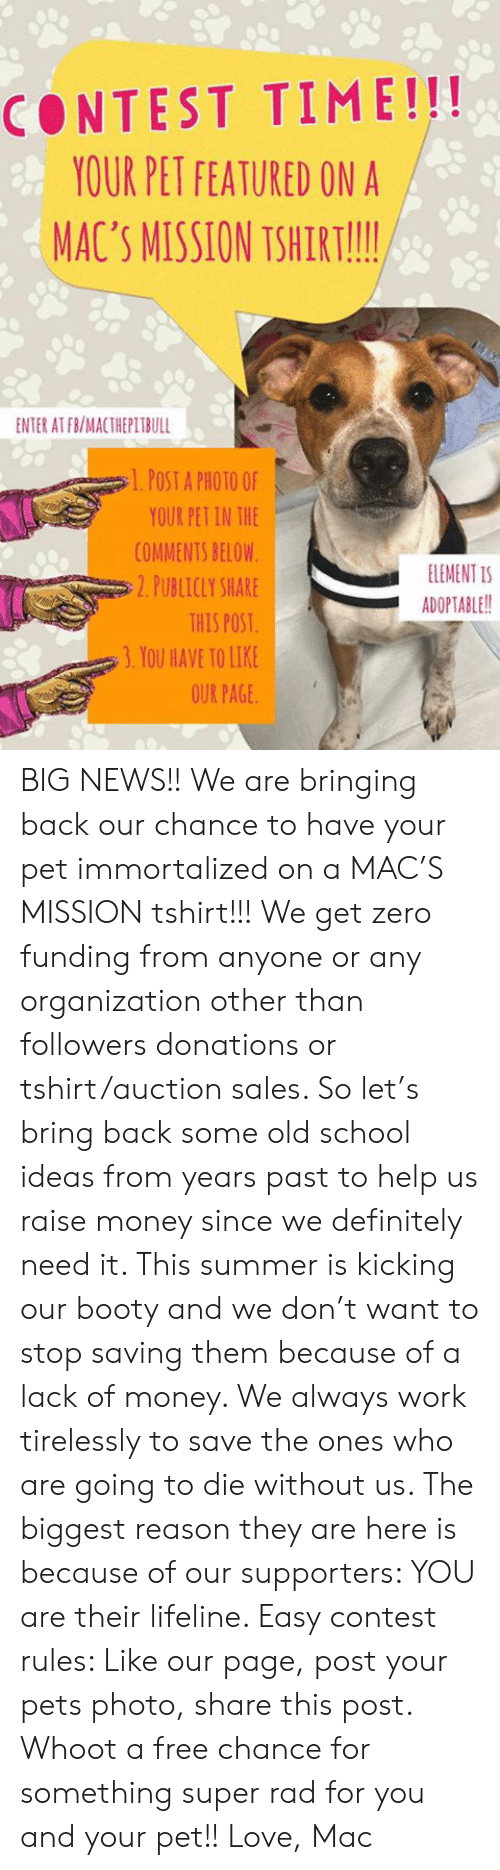 Booty, Definitely, and Love: CONTEST TIME!!!  YOUR PET FEATURED ON A  MAC'S MISSION TSHIRT!!!  ENTER AT FB/MACTHEPITBULL  l. POST A PHOTO OF  YOUR PET IN THE  COMMENTS BELOW  ELEMENT IS  2. PUBLICLY SHARE  ADOPTABLE!!  THIS POST  3. YOU HAVE TO LIKE  OUR PAGE BIG NEWS!! We are bringing back our chance to have your pet immortalized on a MAC'S MISSION tshirt!!! We get zero funding from anyone or any organization other than followers donations or tshirt/auction sales. So let's bring back some old school ideas from years past to help us raise money since we definitely need it. This summer is kicking our booty and we don't want to stop saving them because of a lack of money. We always work tirelessly to save the ones who are going to die without us. The biggest reason they are here is because of our supporters: YOU are their lifeline. Easy contest rules: Like our page, post your pets photo, share this post. Whoot a free chance for something super rad for you and your pet!!   Love, Mac